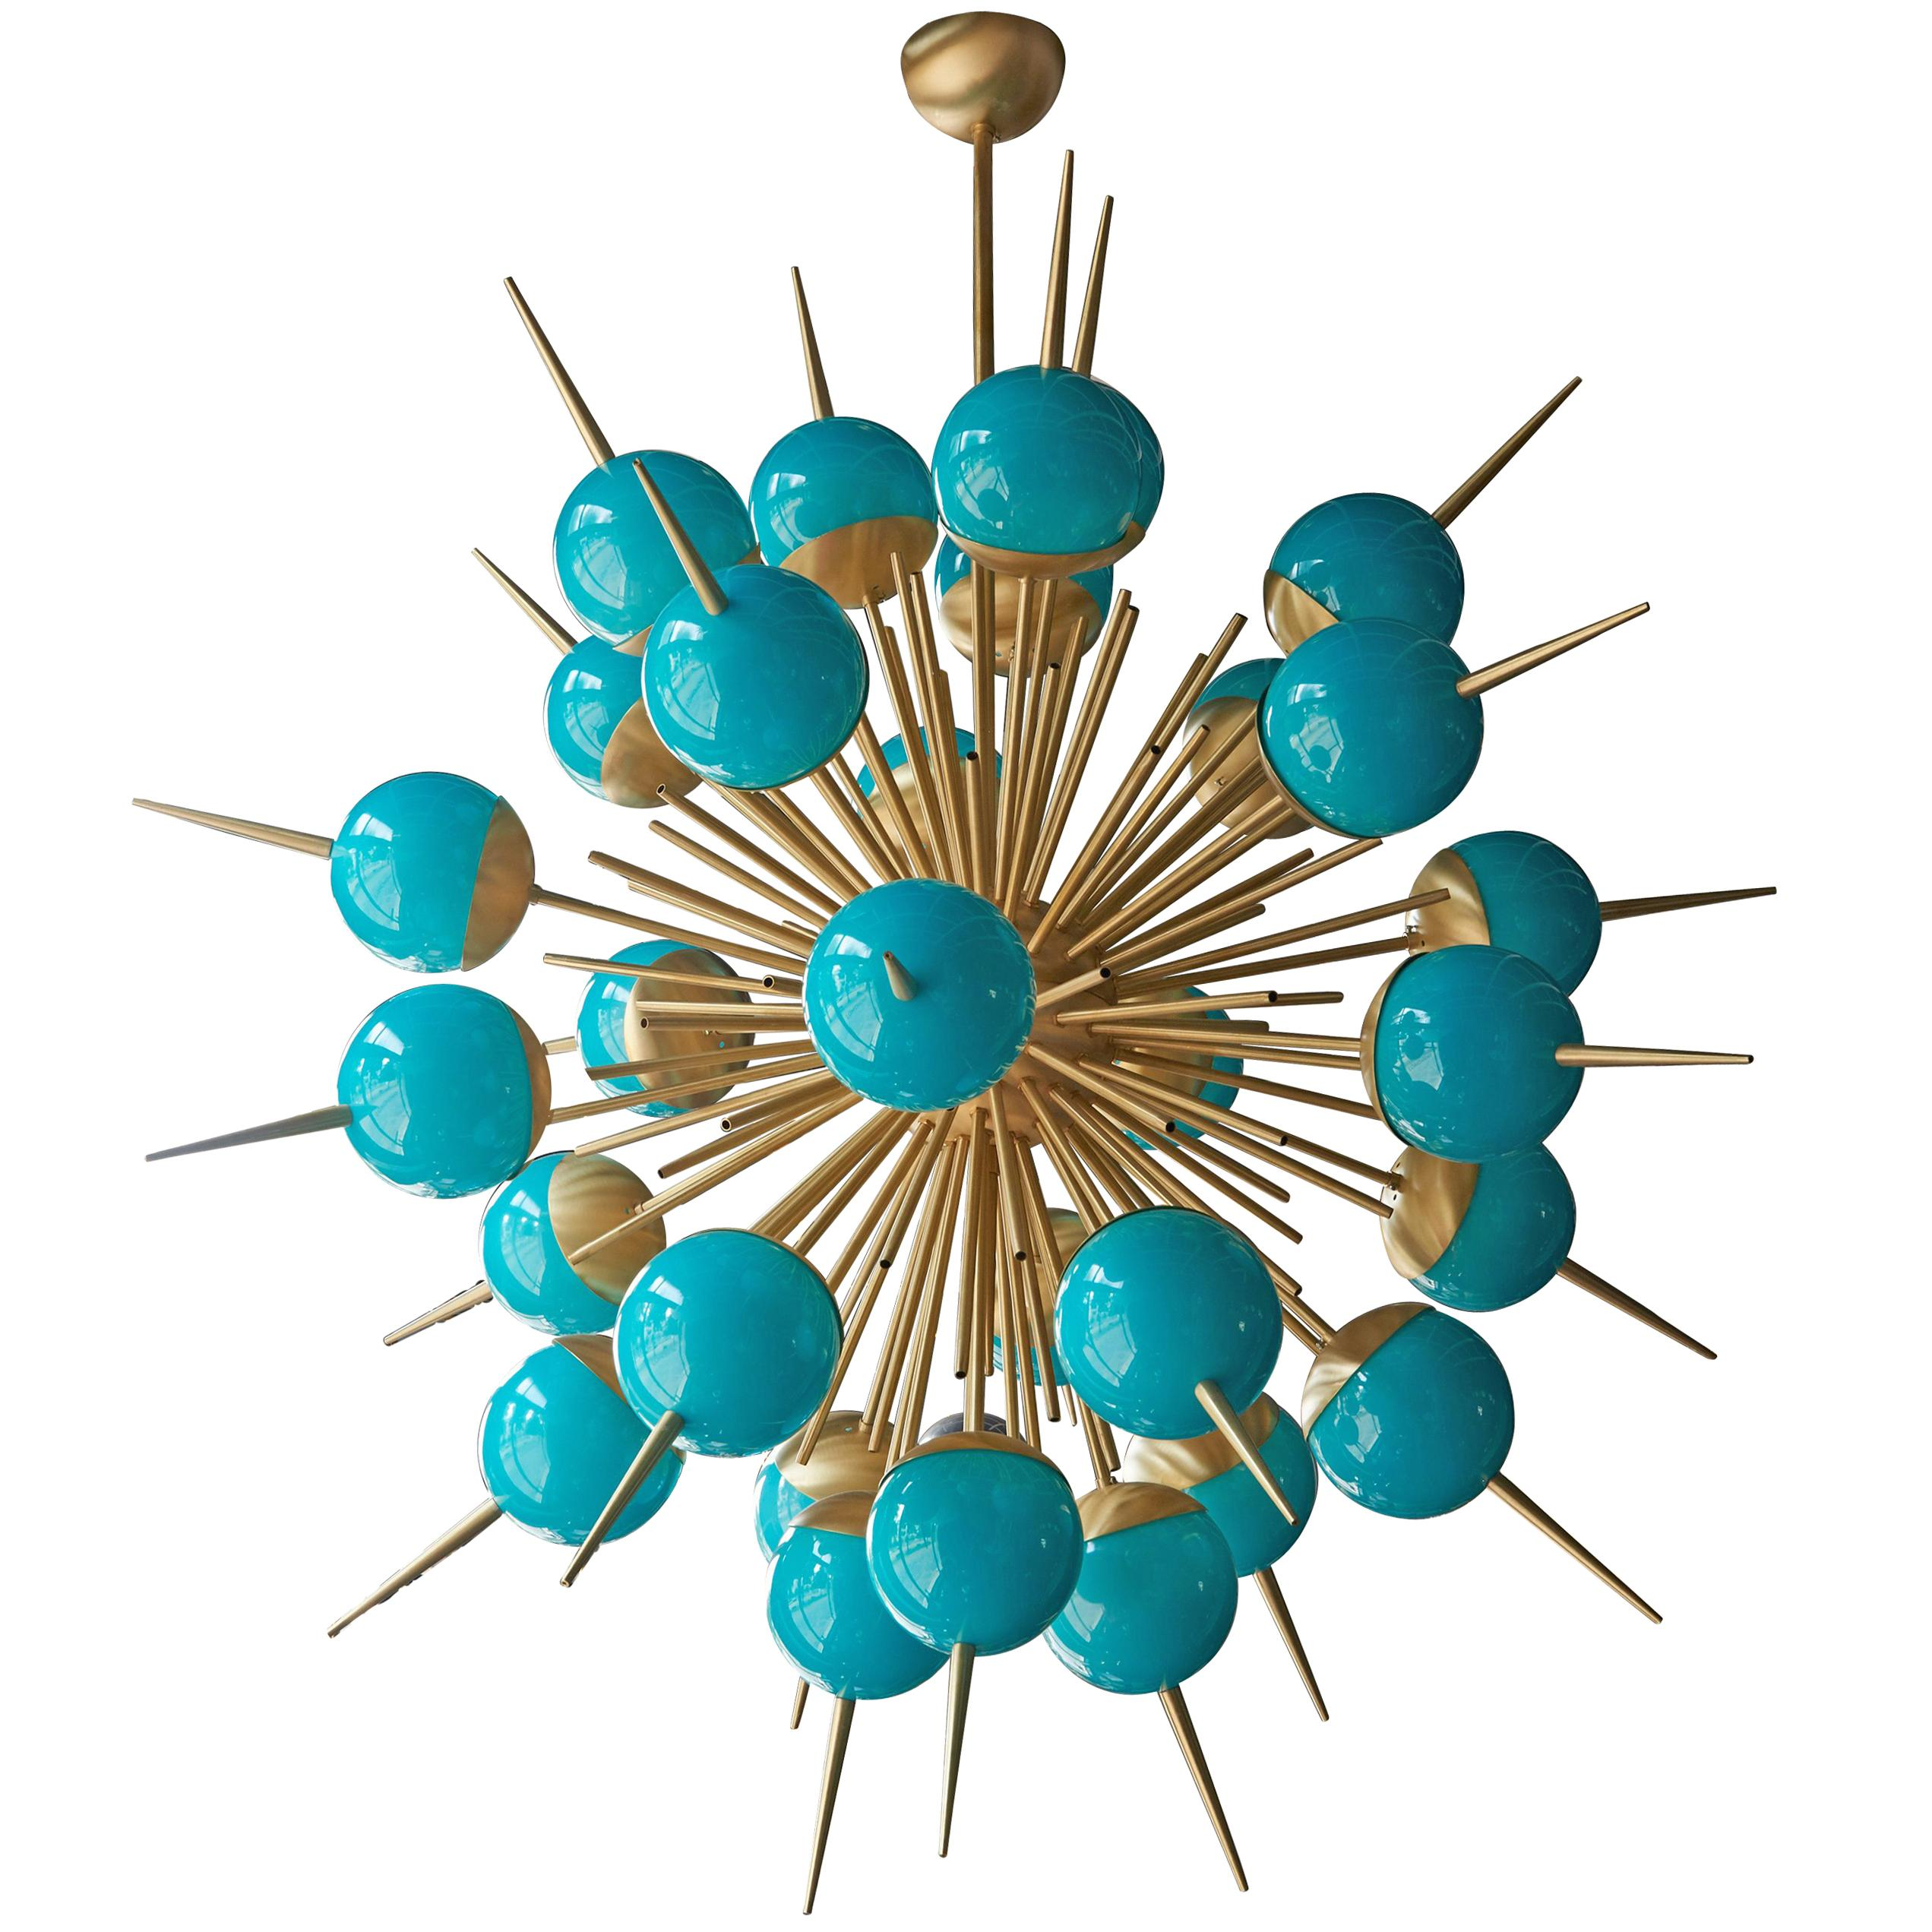 1 of 2 Huge Turquoise Color Murano Glass and Brass Sputnik Chandeliers